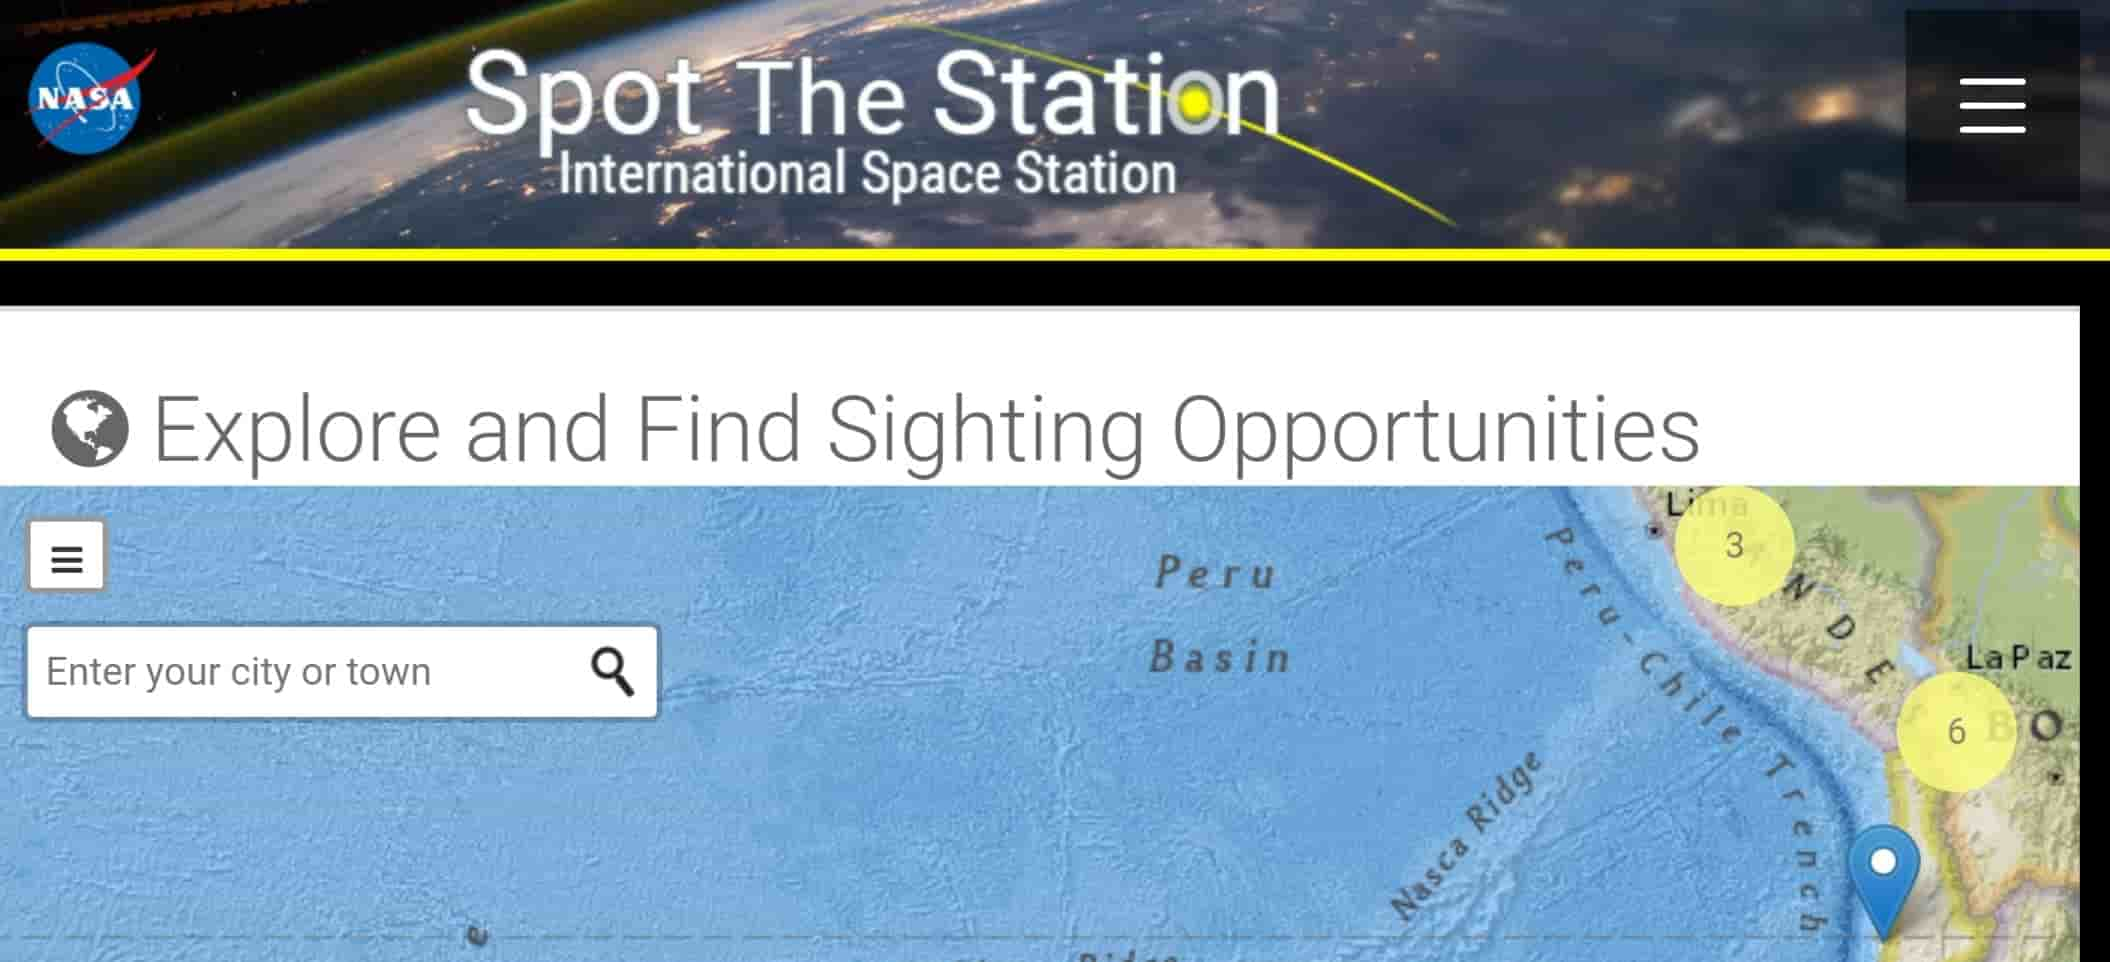 How to spot the ISS